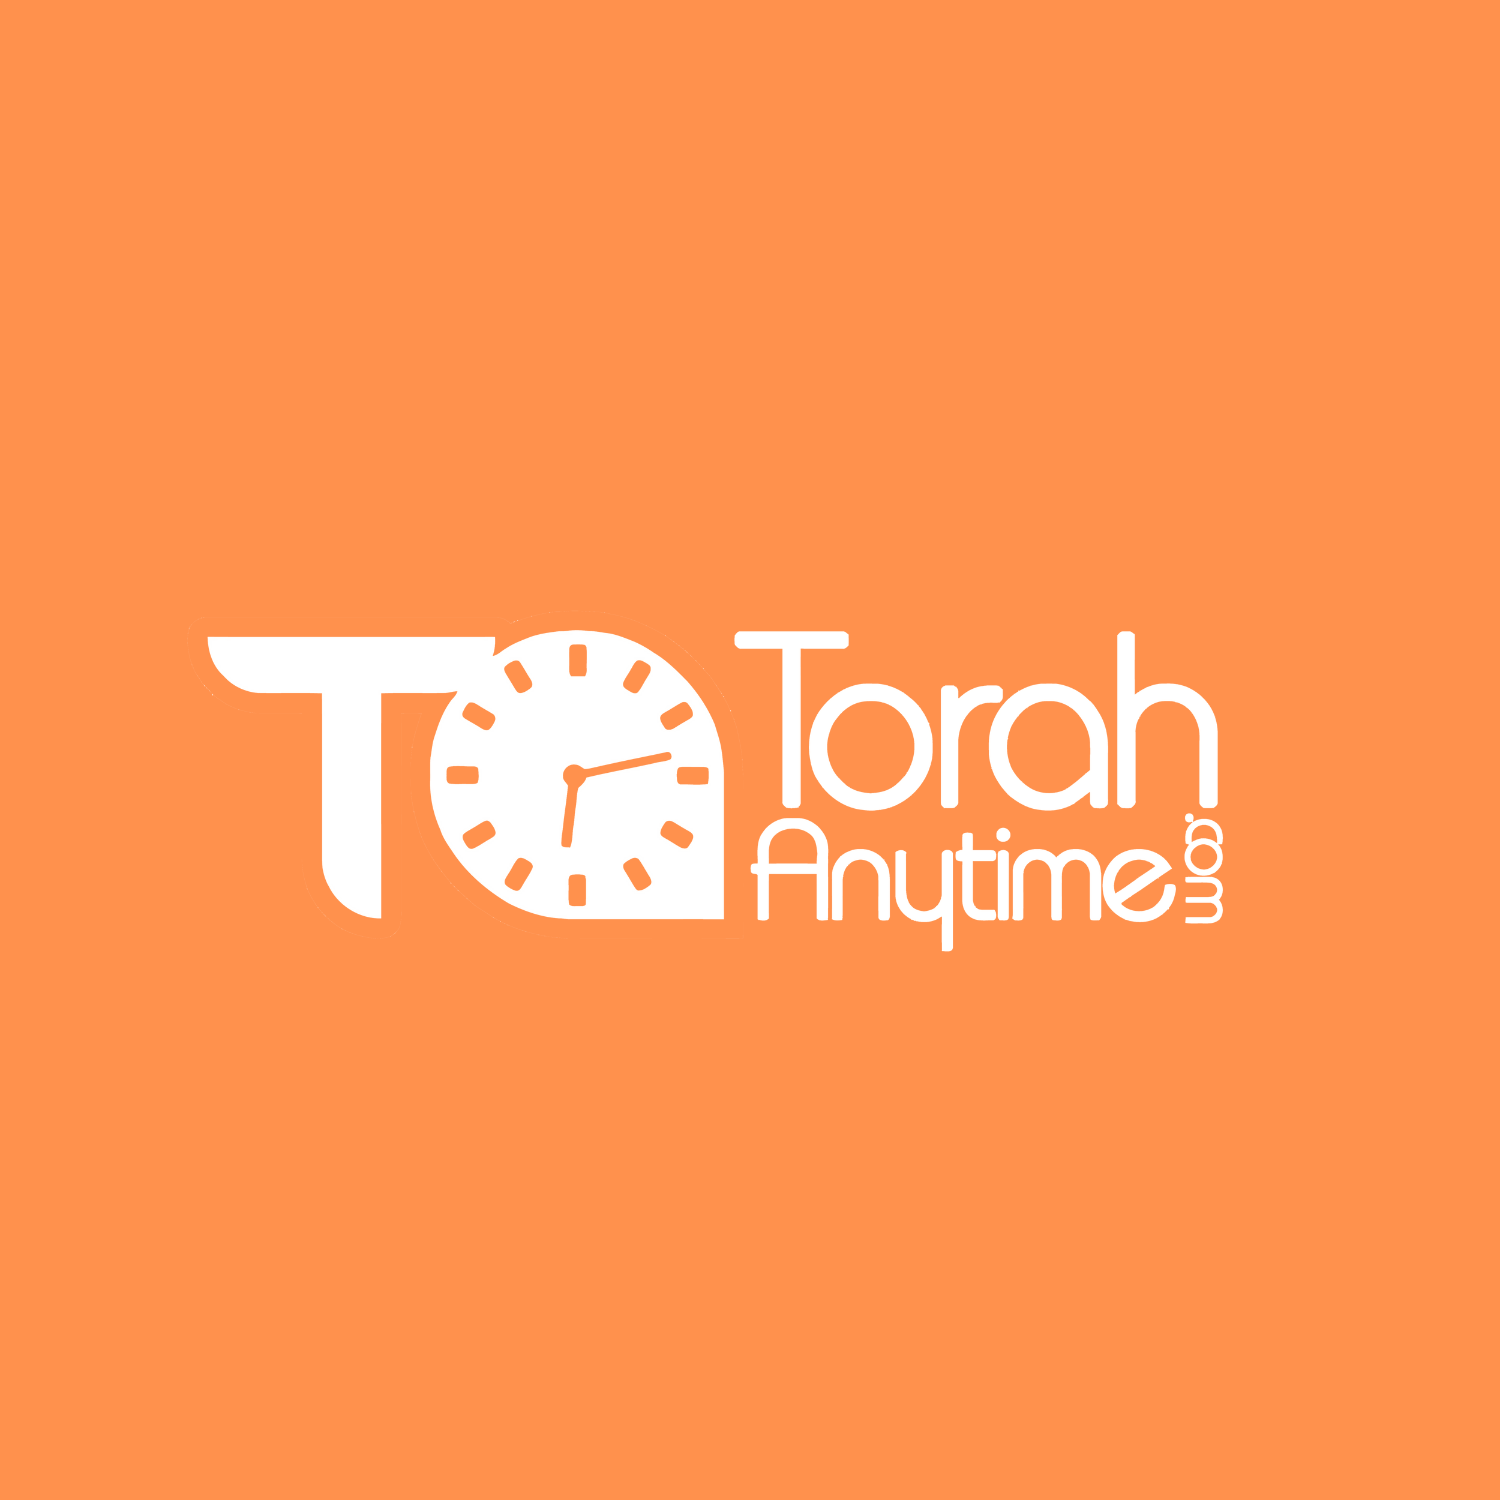 Daily Dose of TorahAnytime